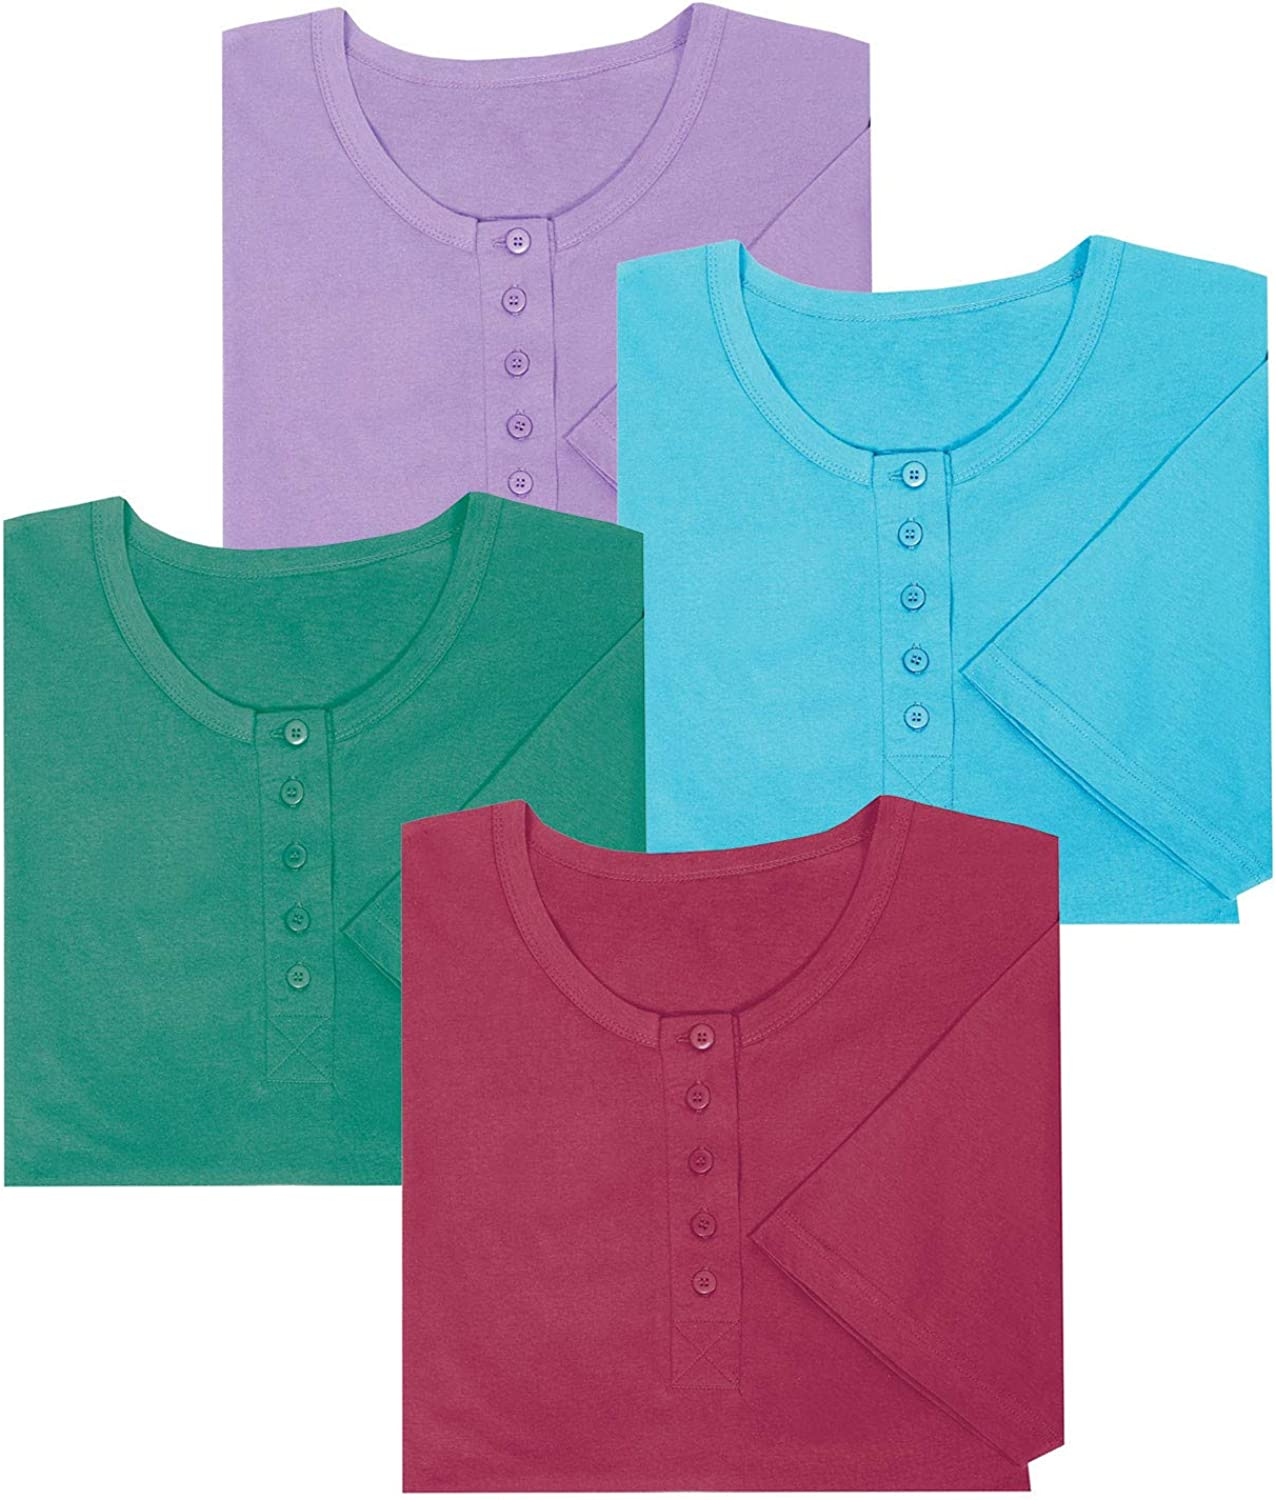 Catalog Classics quality assurance Deluxe Women's Long Henley Nightshirts Slee 4 Set - of